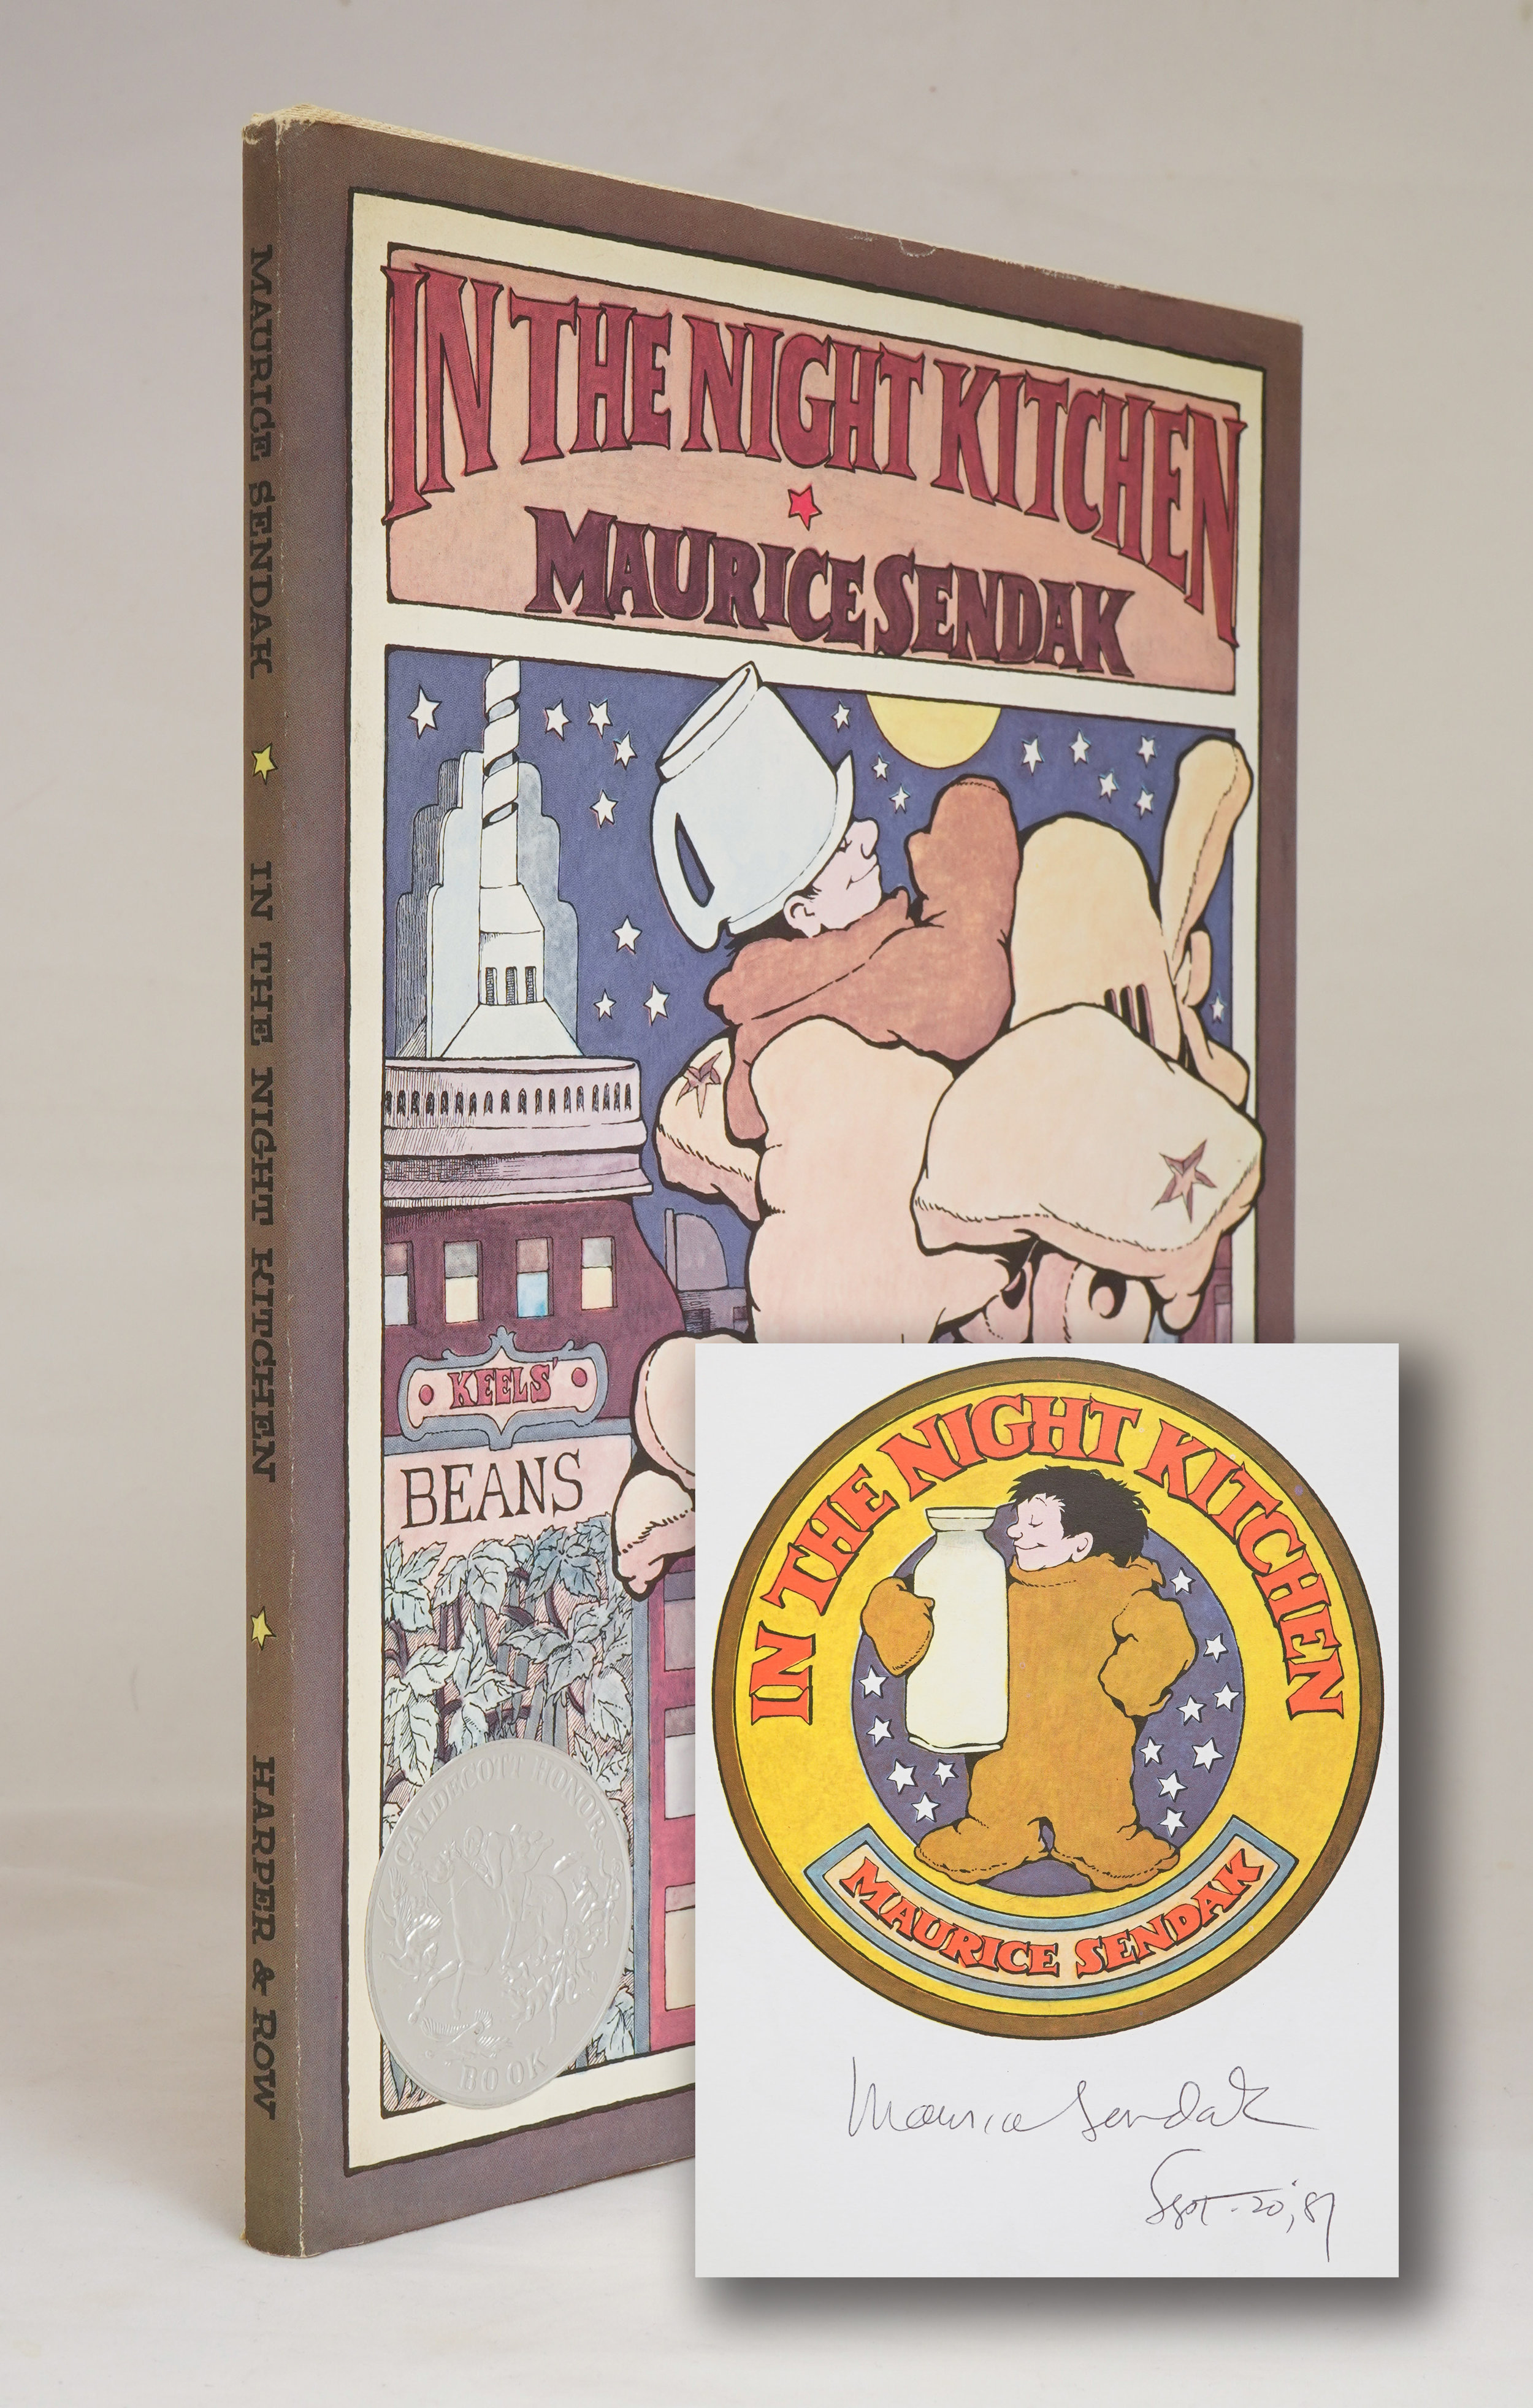 Offered by Pryor-Johnson Rare Books